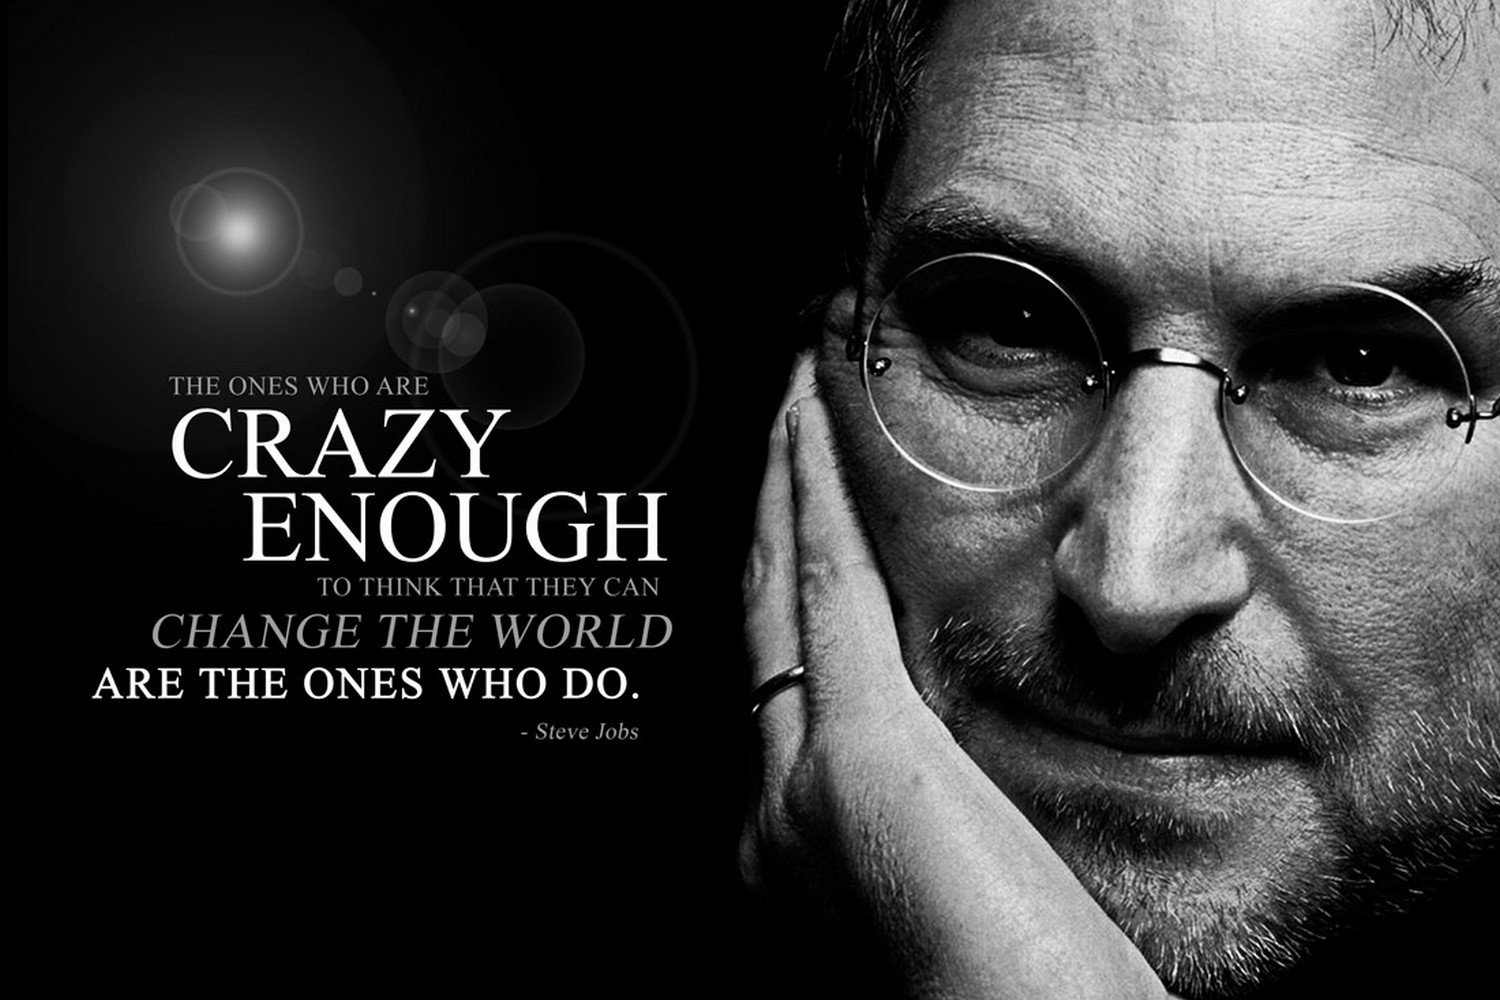 Posterboy steve jobs crazy enough poster amazon in home kitchen